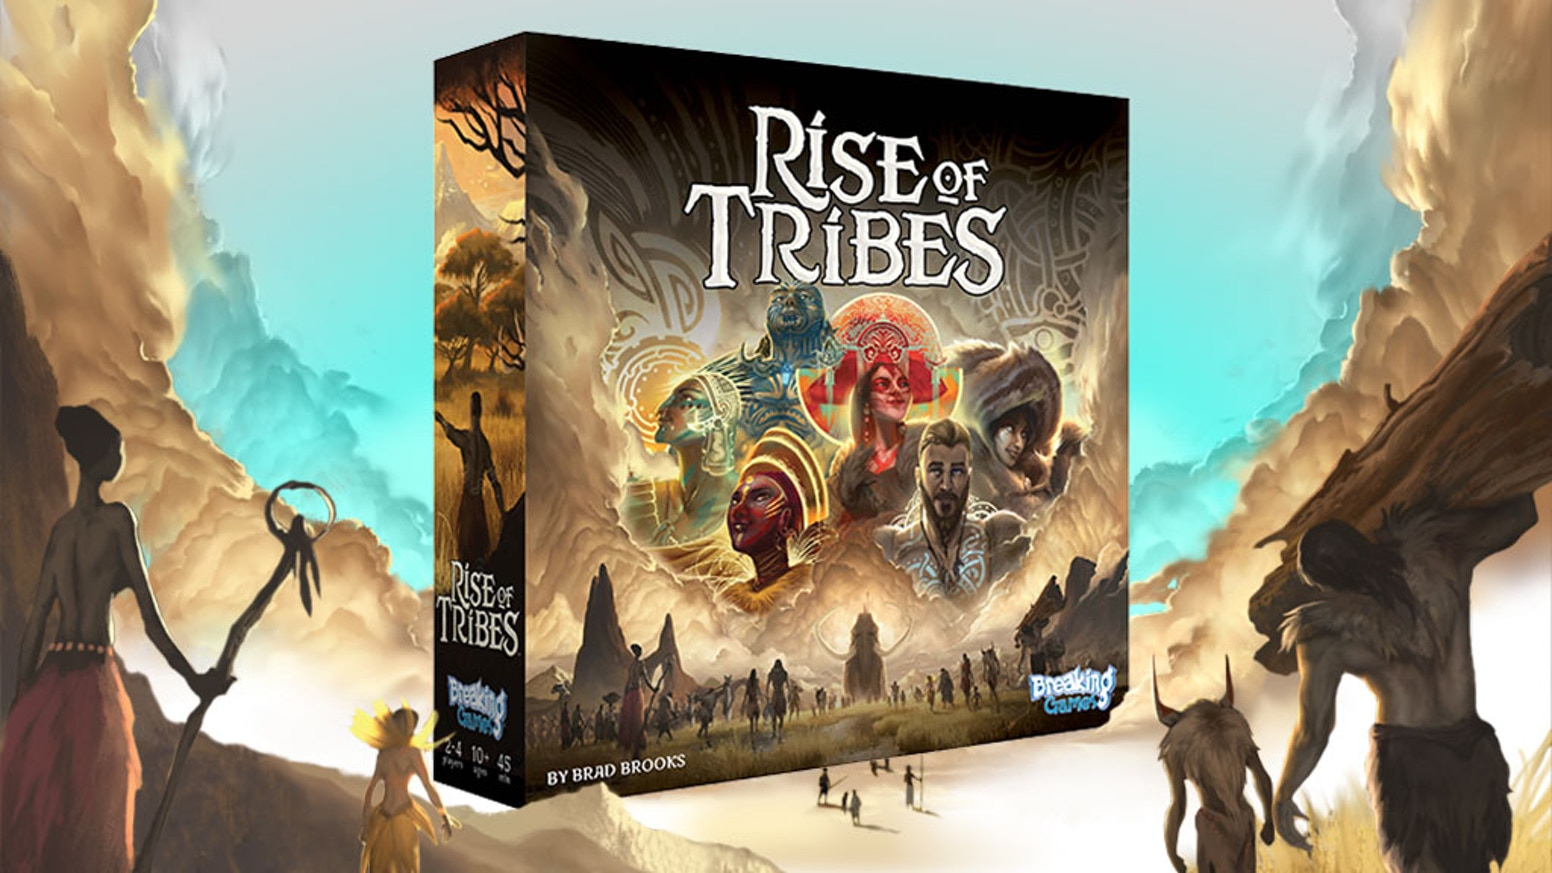 Lead your prehistoric Tribe to victory through discovery, achievements, civilization and overcoming the odds. Choose how you Rise.